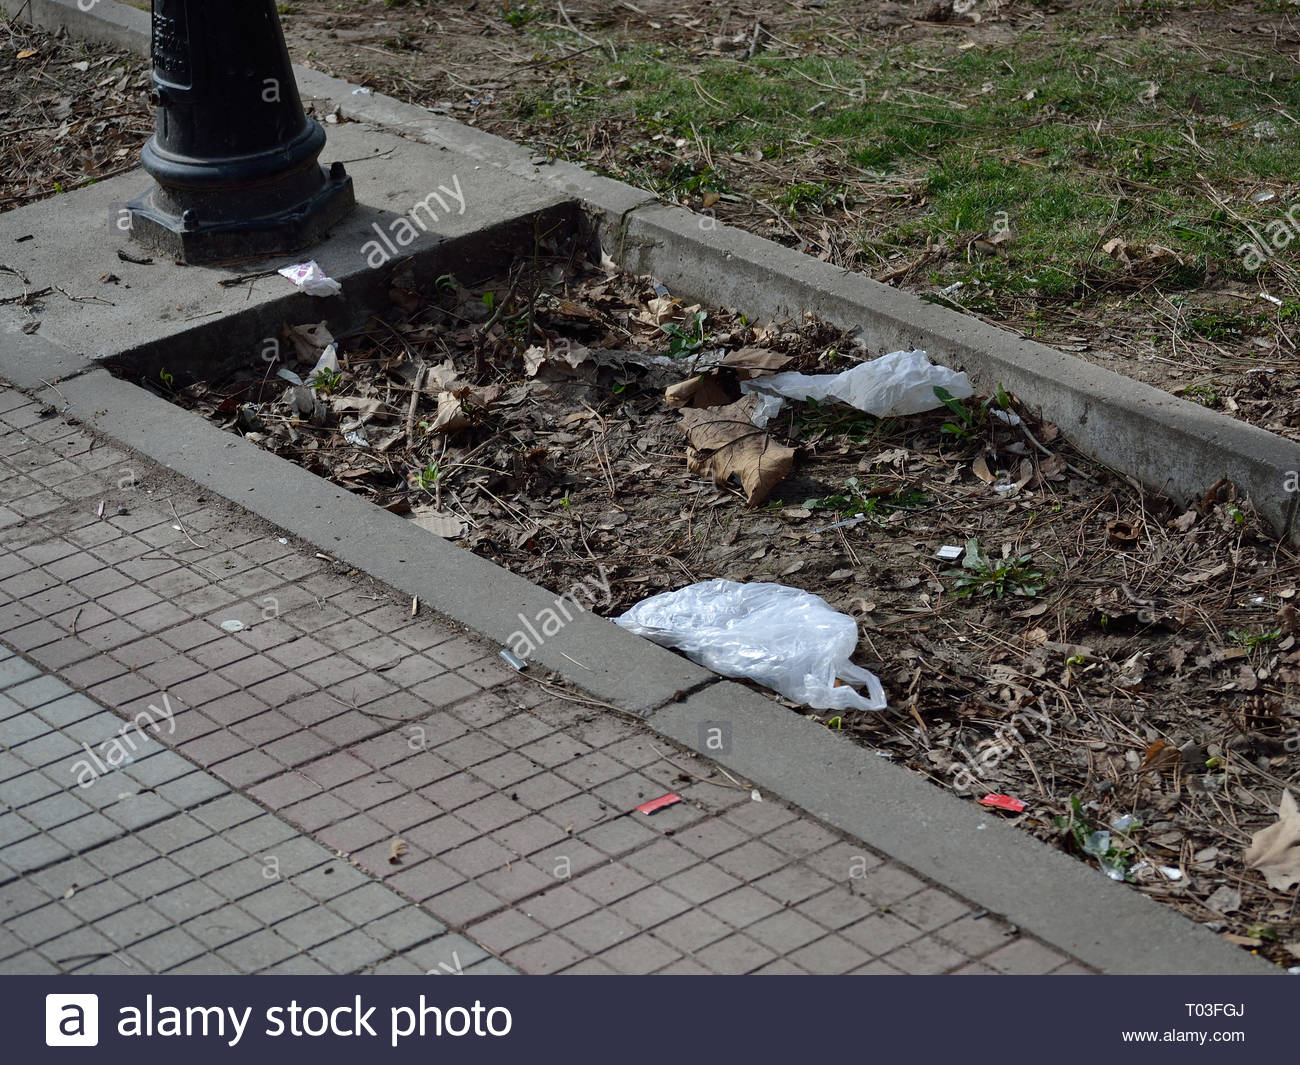 Plastic bags thrown on the street - Stock Image